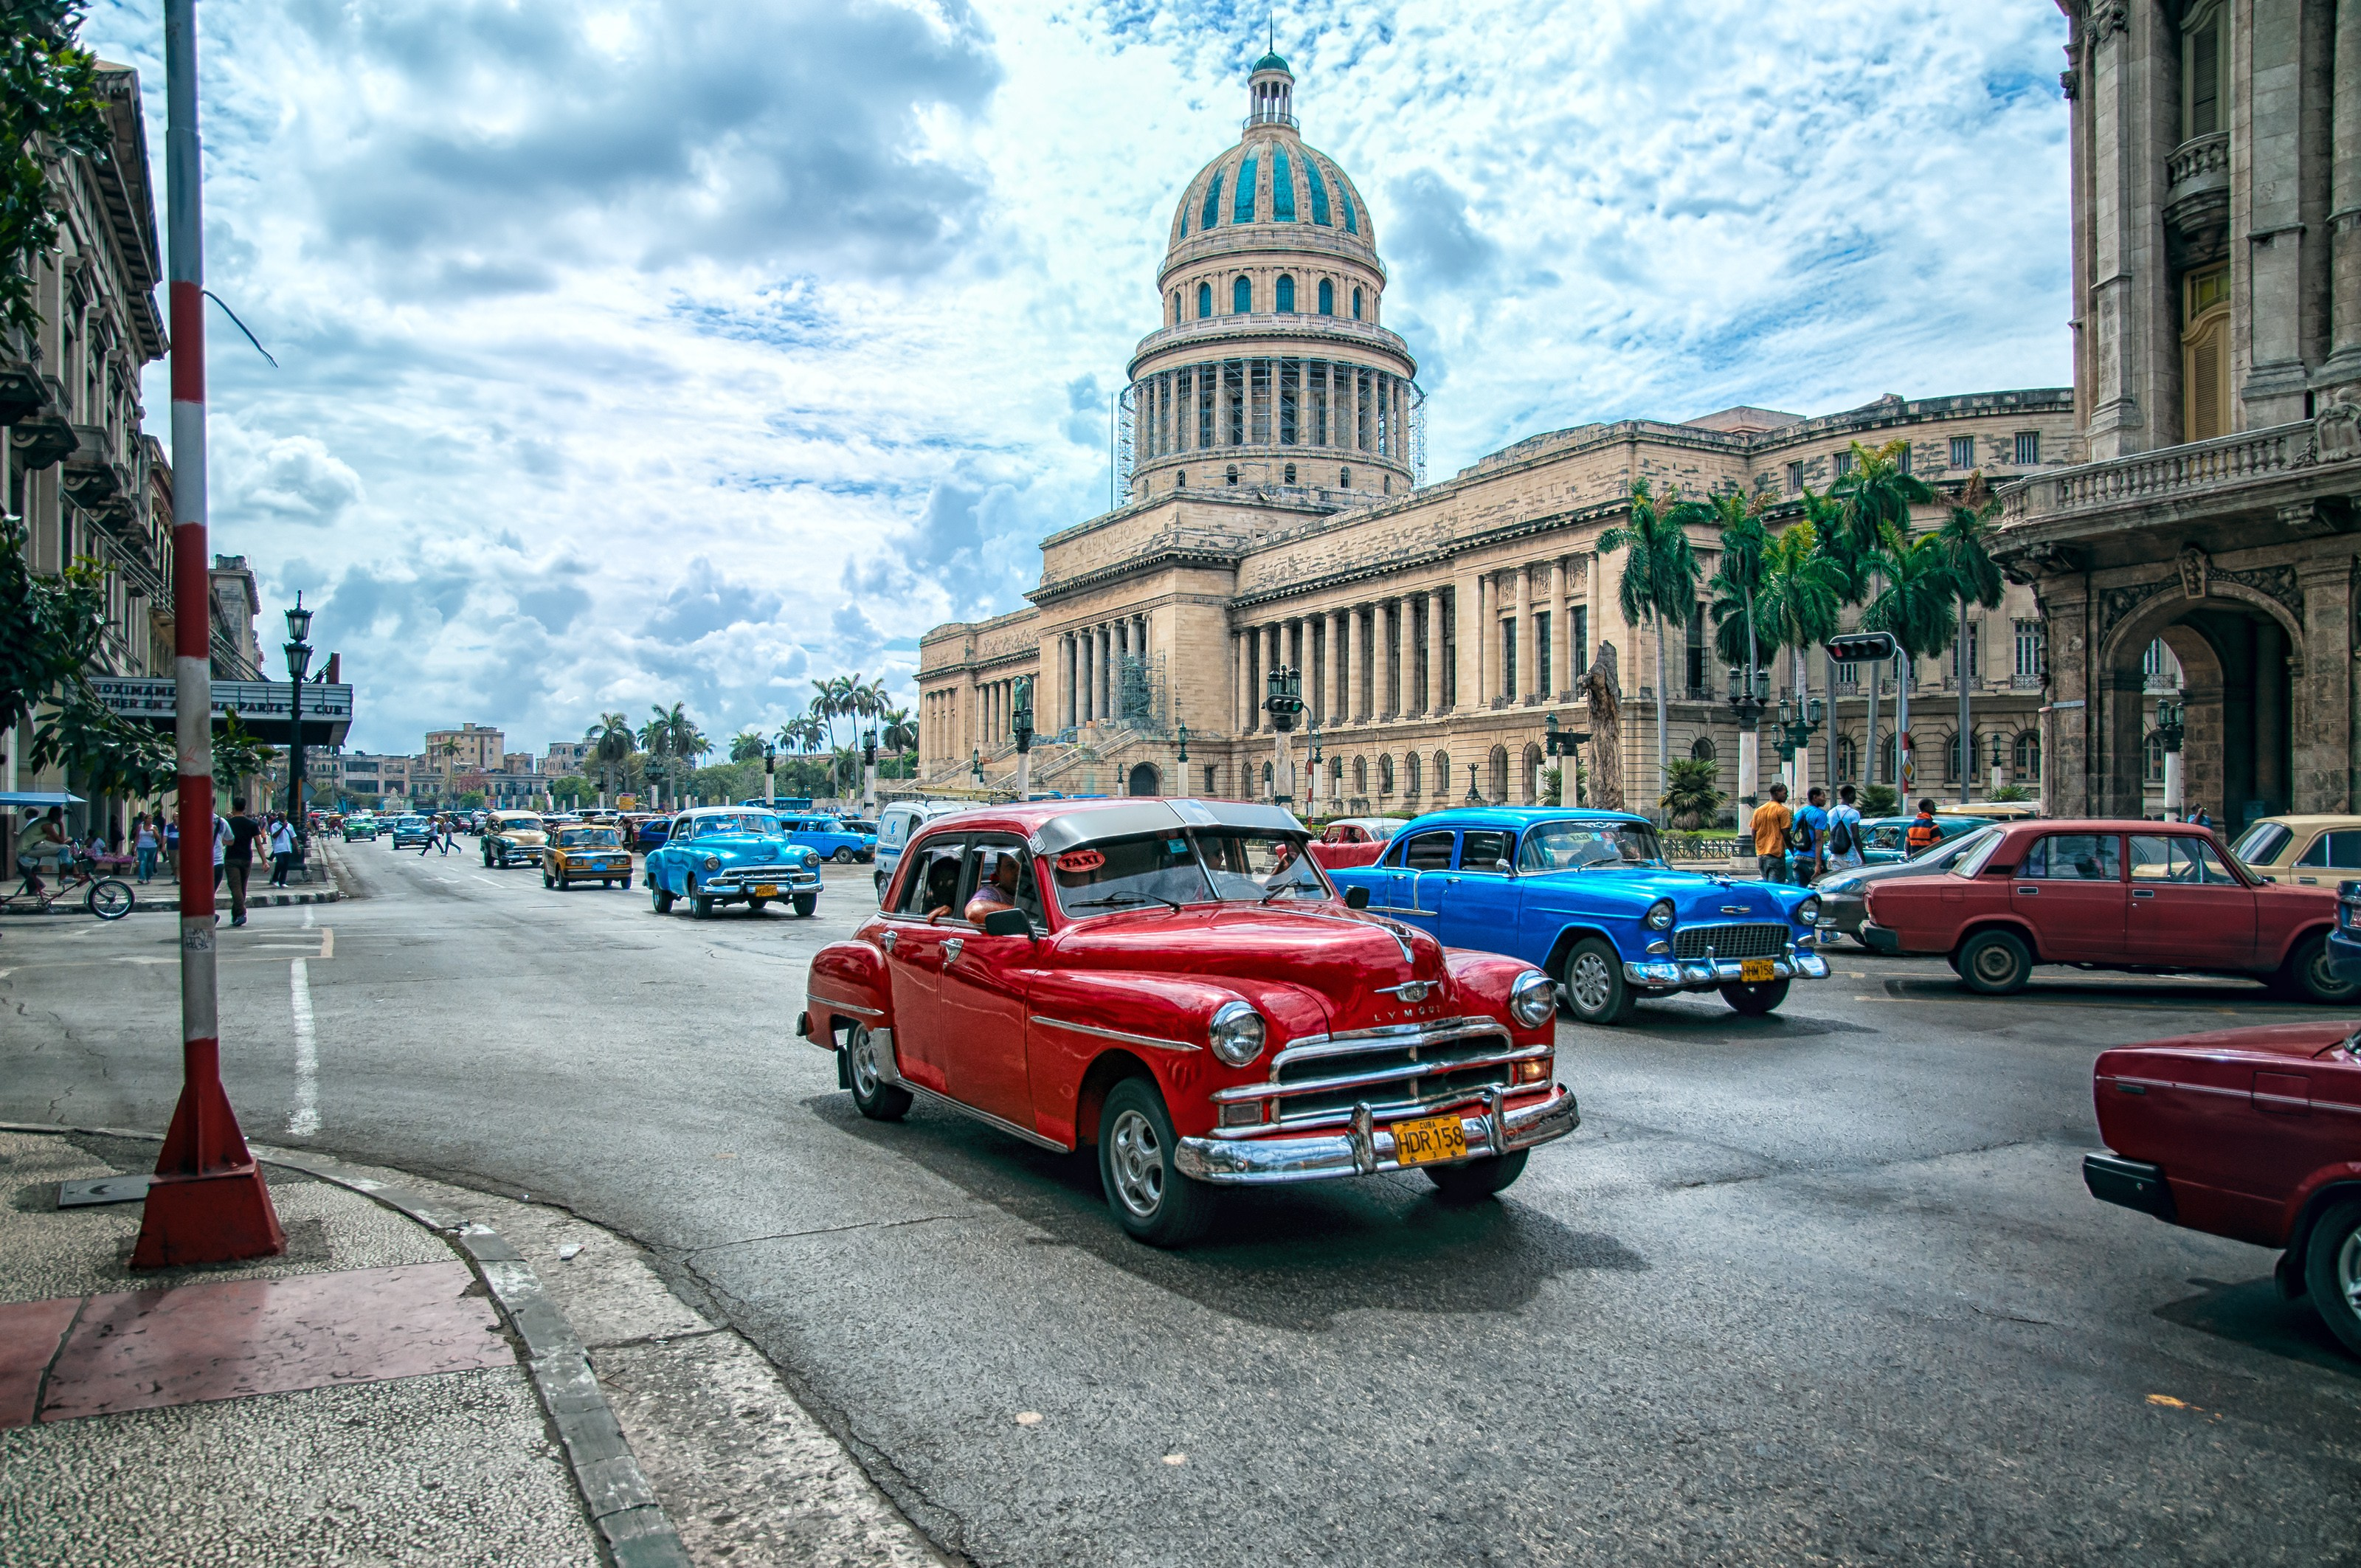 General 3200x2125 town city sculpture statue Havana Cuba capital street car crossroads old car classic car architecture building palm trees path clouds people HDR bicycle theaters old building dome lamp taxi